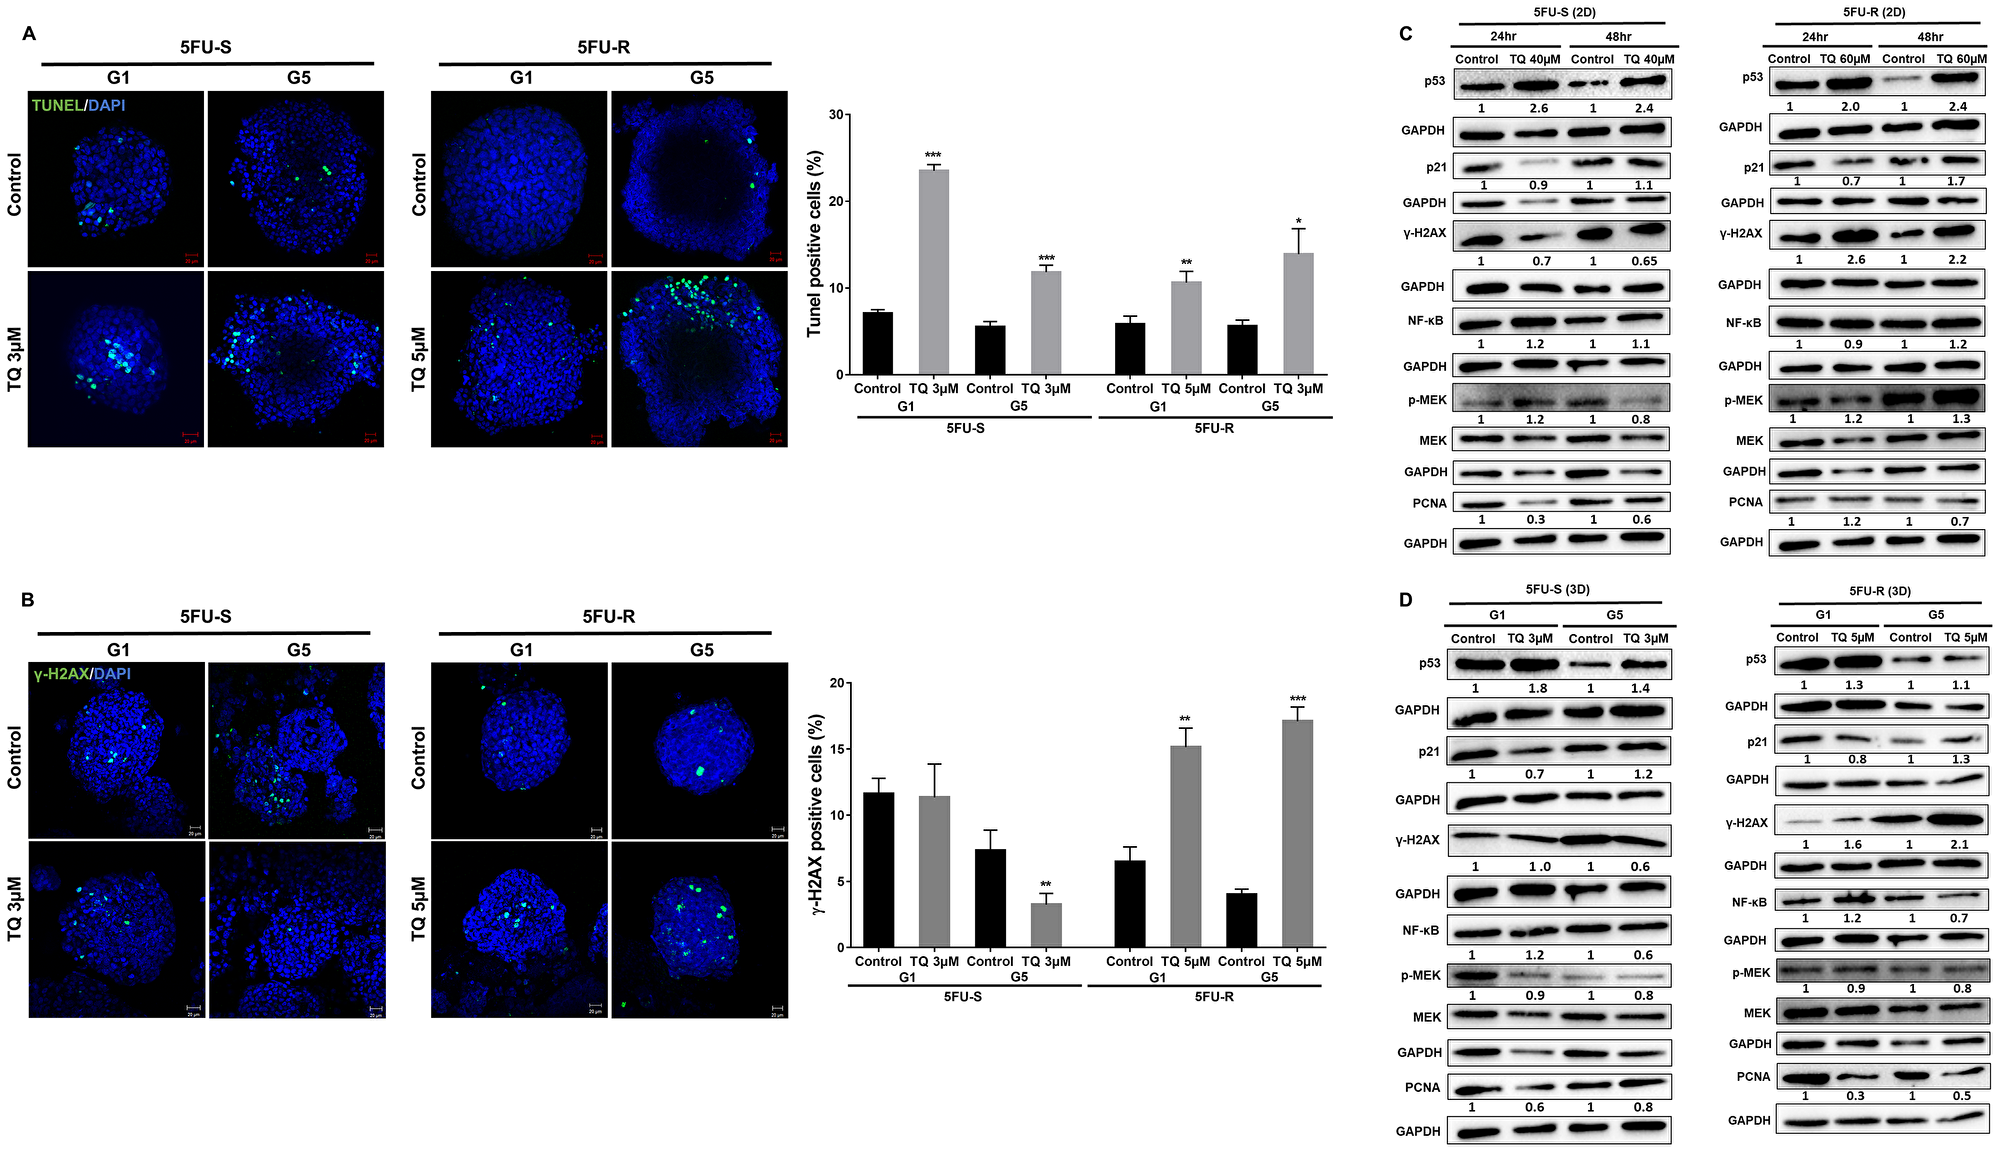 TQ induces apoptosis and DNA damage in colon cancer stem/progenitor cells.